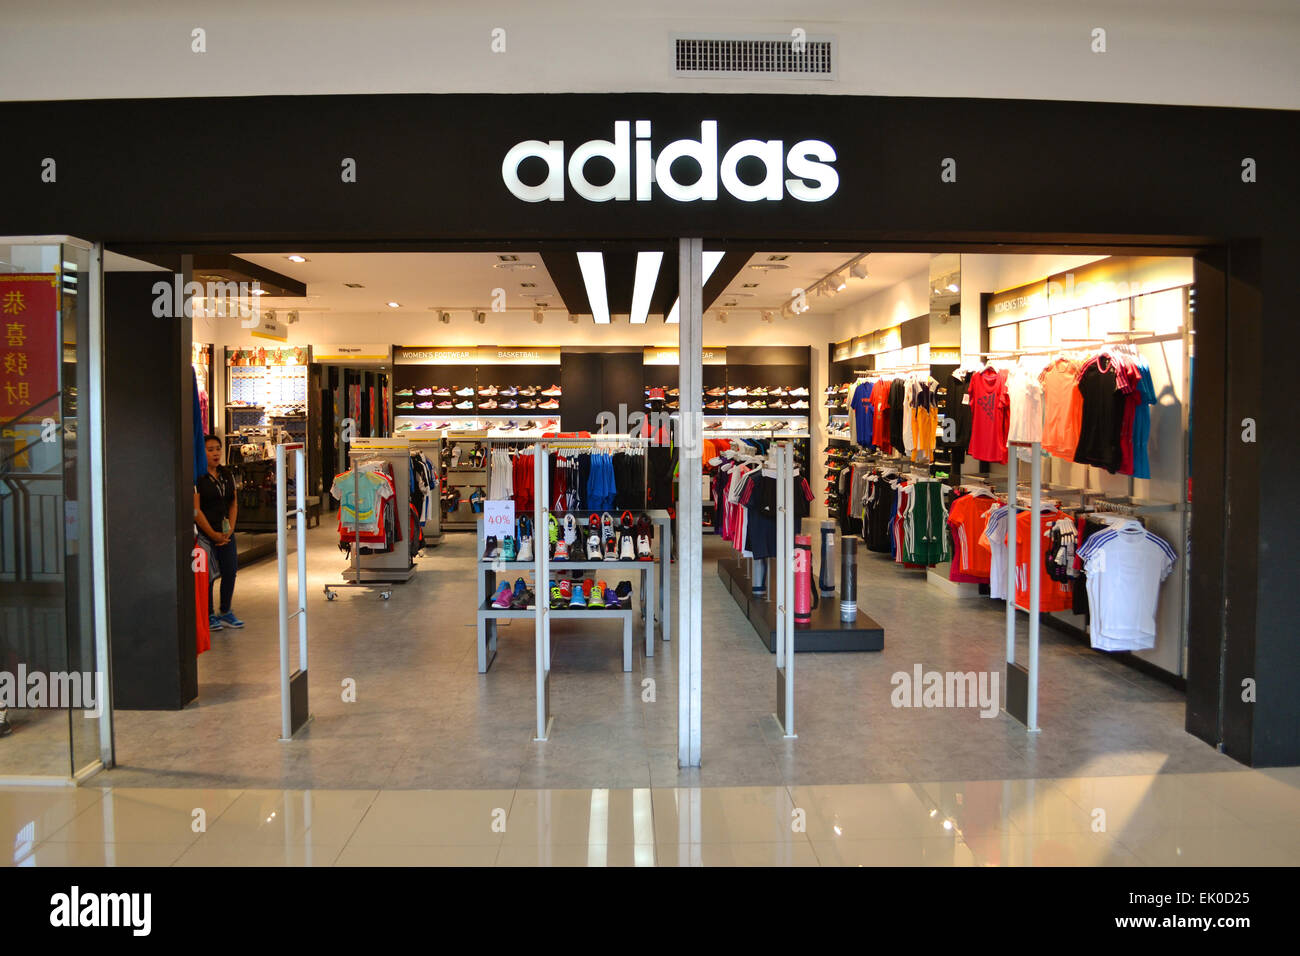 Adidas Shop Stock Photos & Adidas Shop Stock Images Alamy